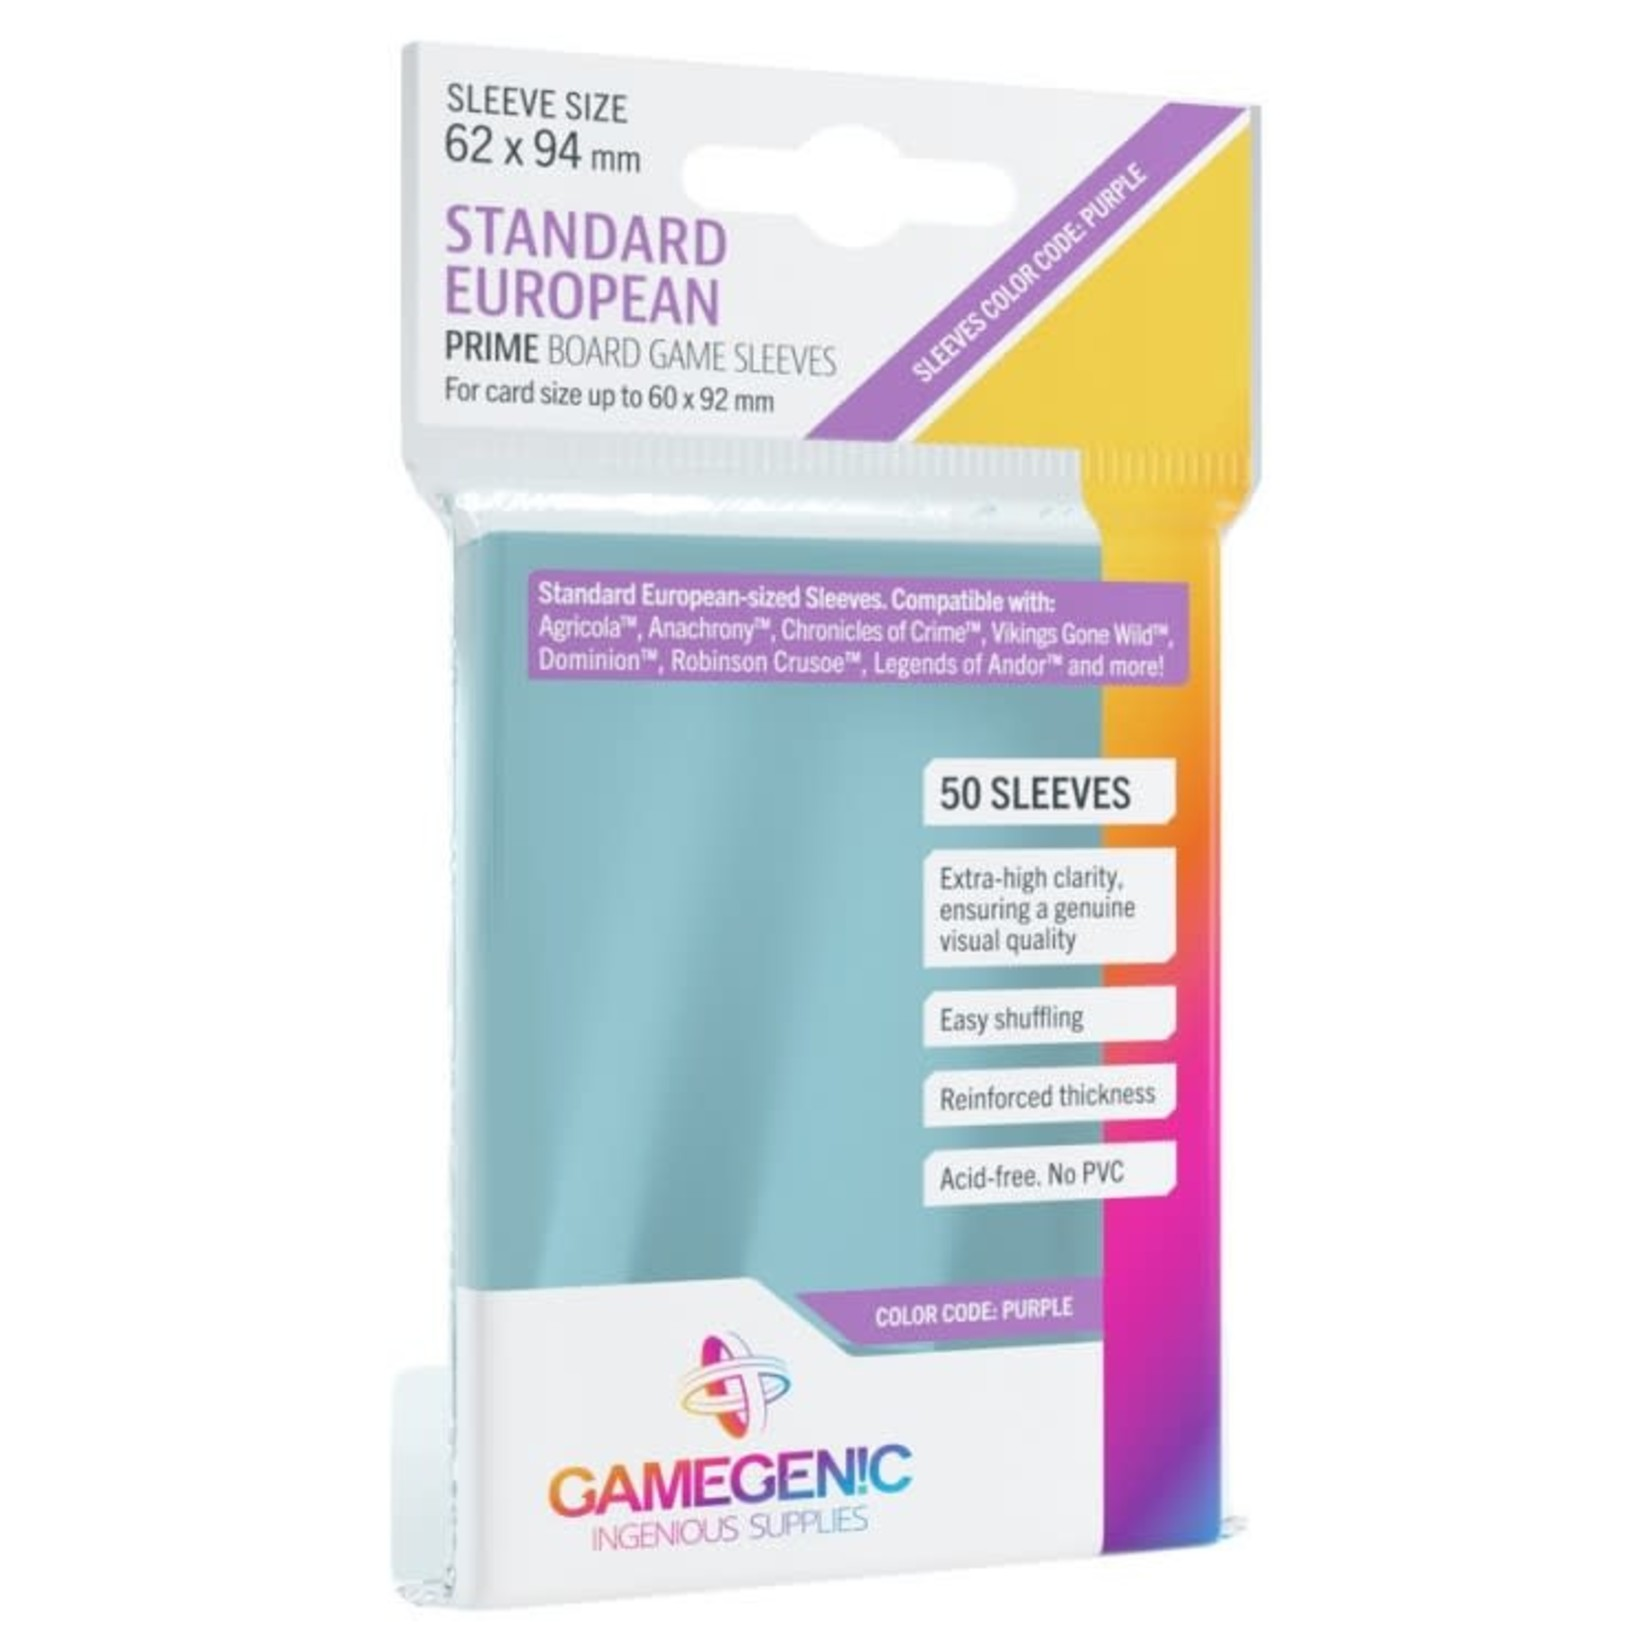 Gamegenic Gamegenic Sleeves: Standard European PRIME - 50 count (62x94mm)